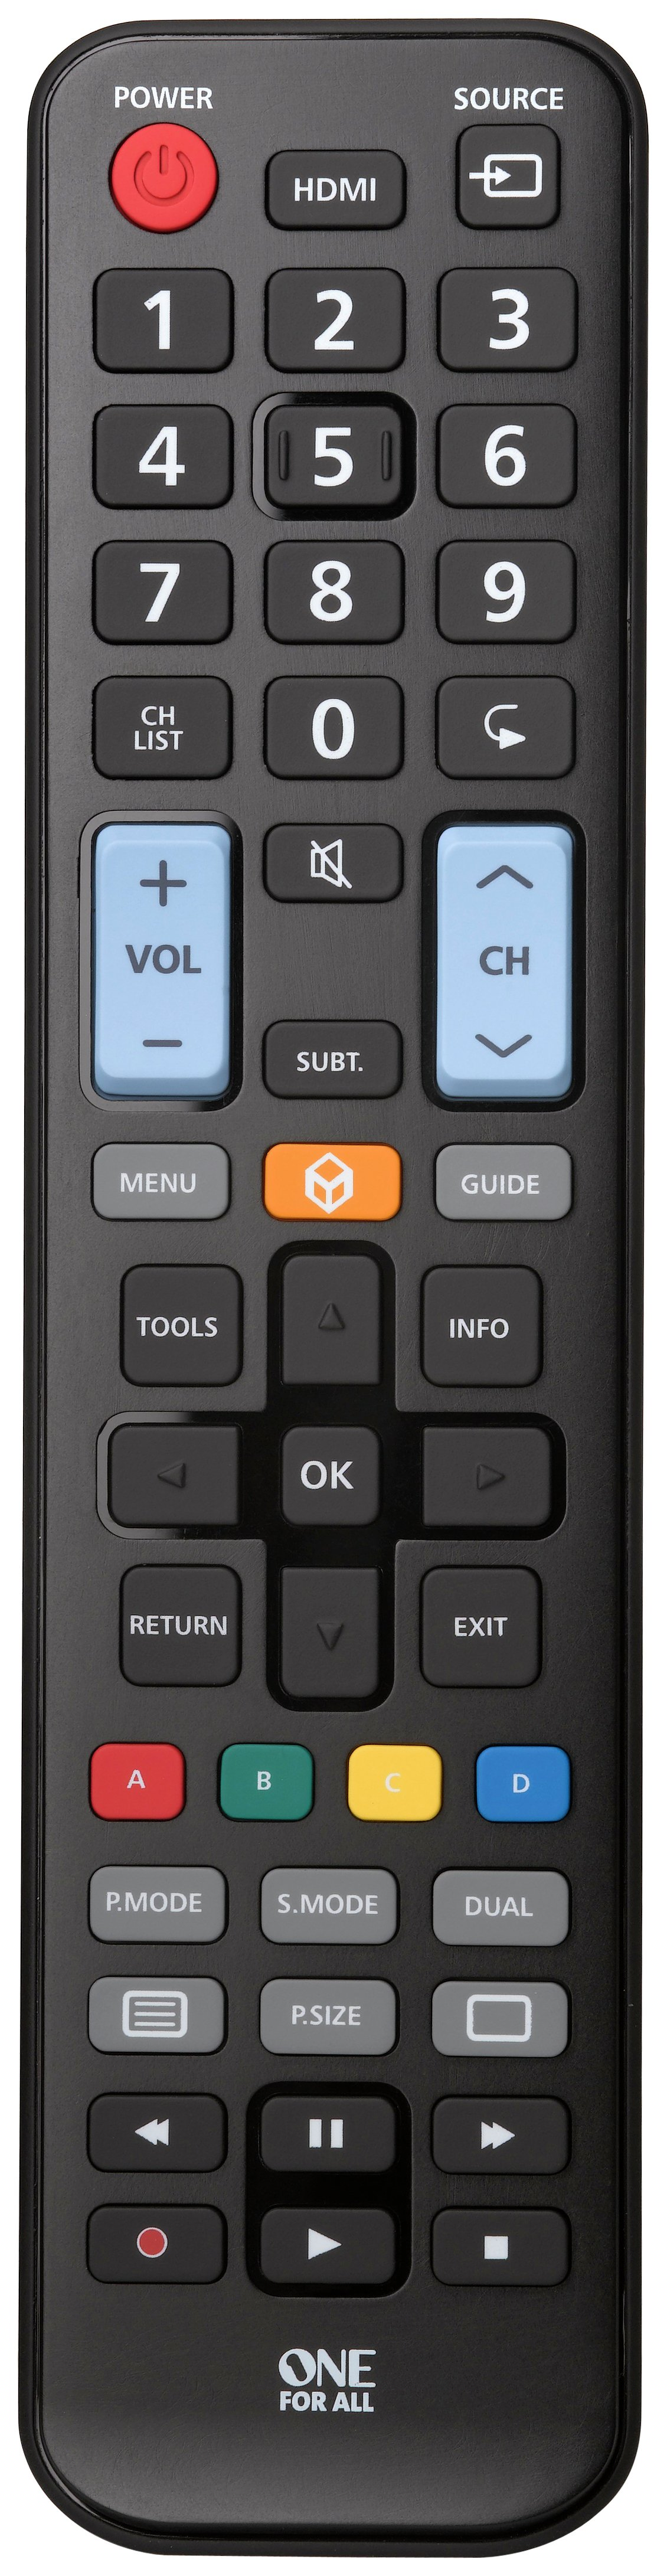 One For All One For All Samsung Remote Control.